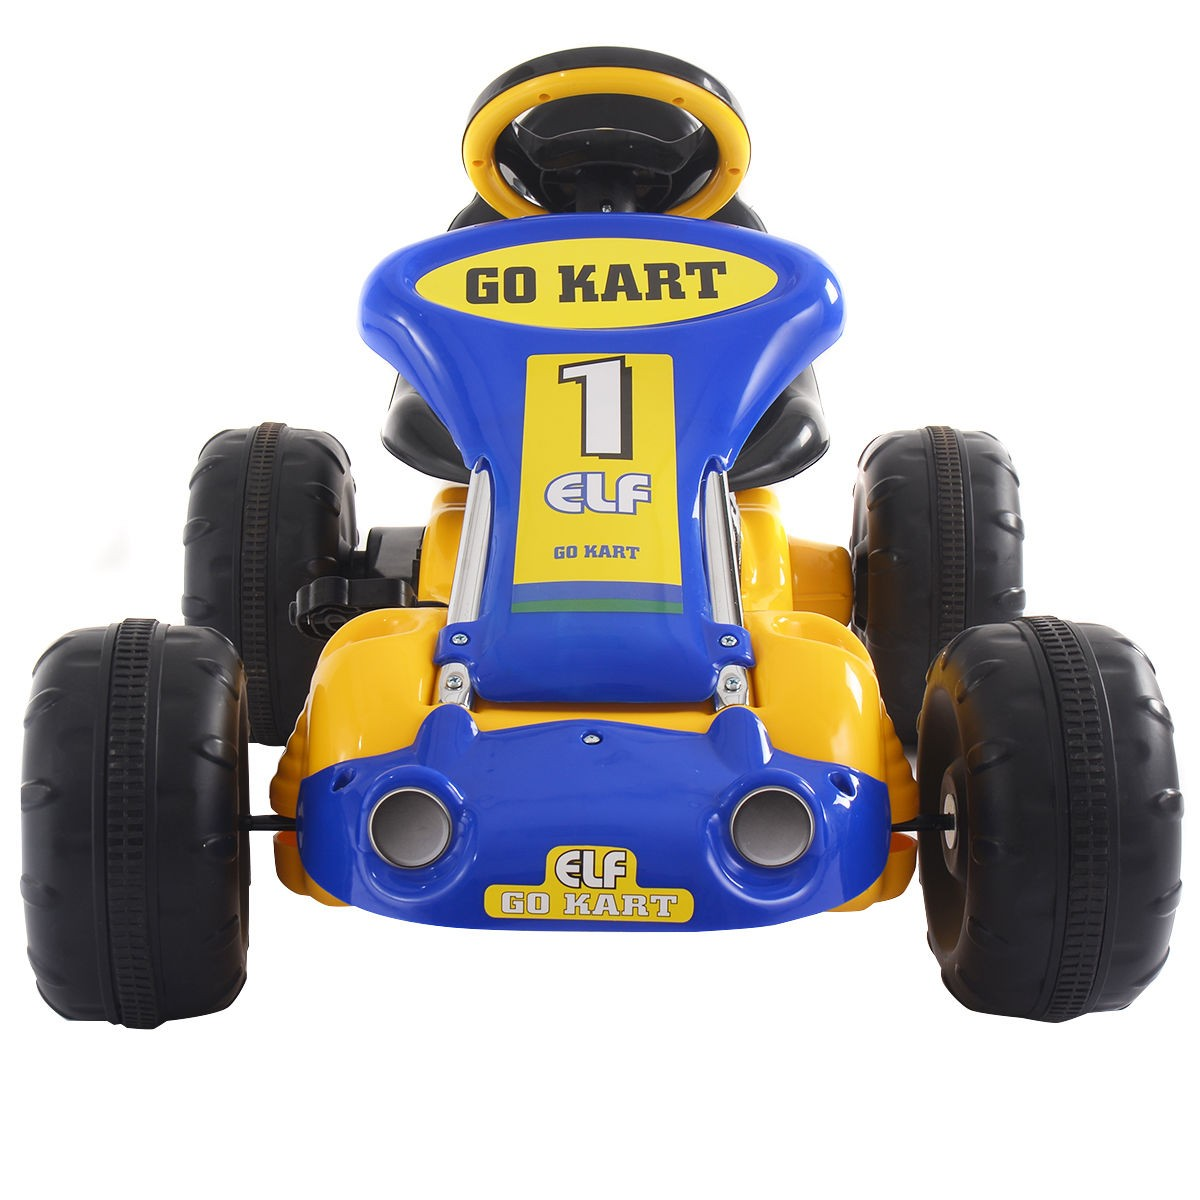 Go Kart Kids Ride On Car Pedal Powered Car 4 Wheel Racer Toy Outdoor Yellow